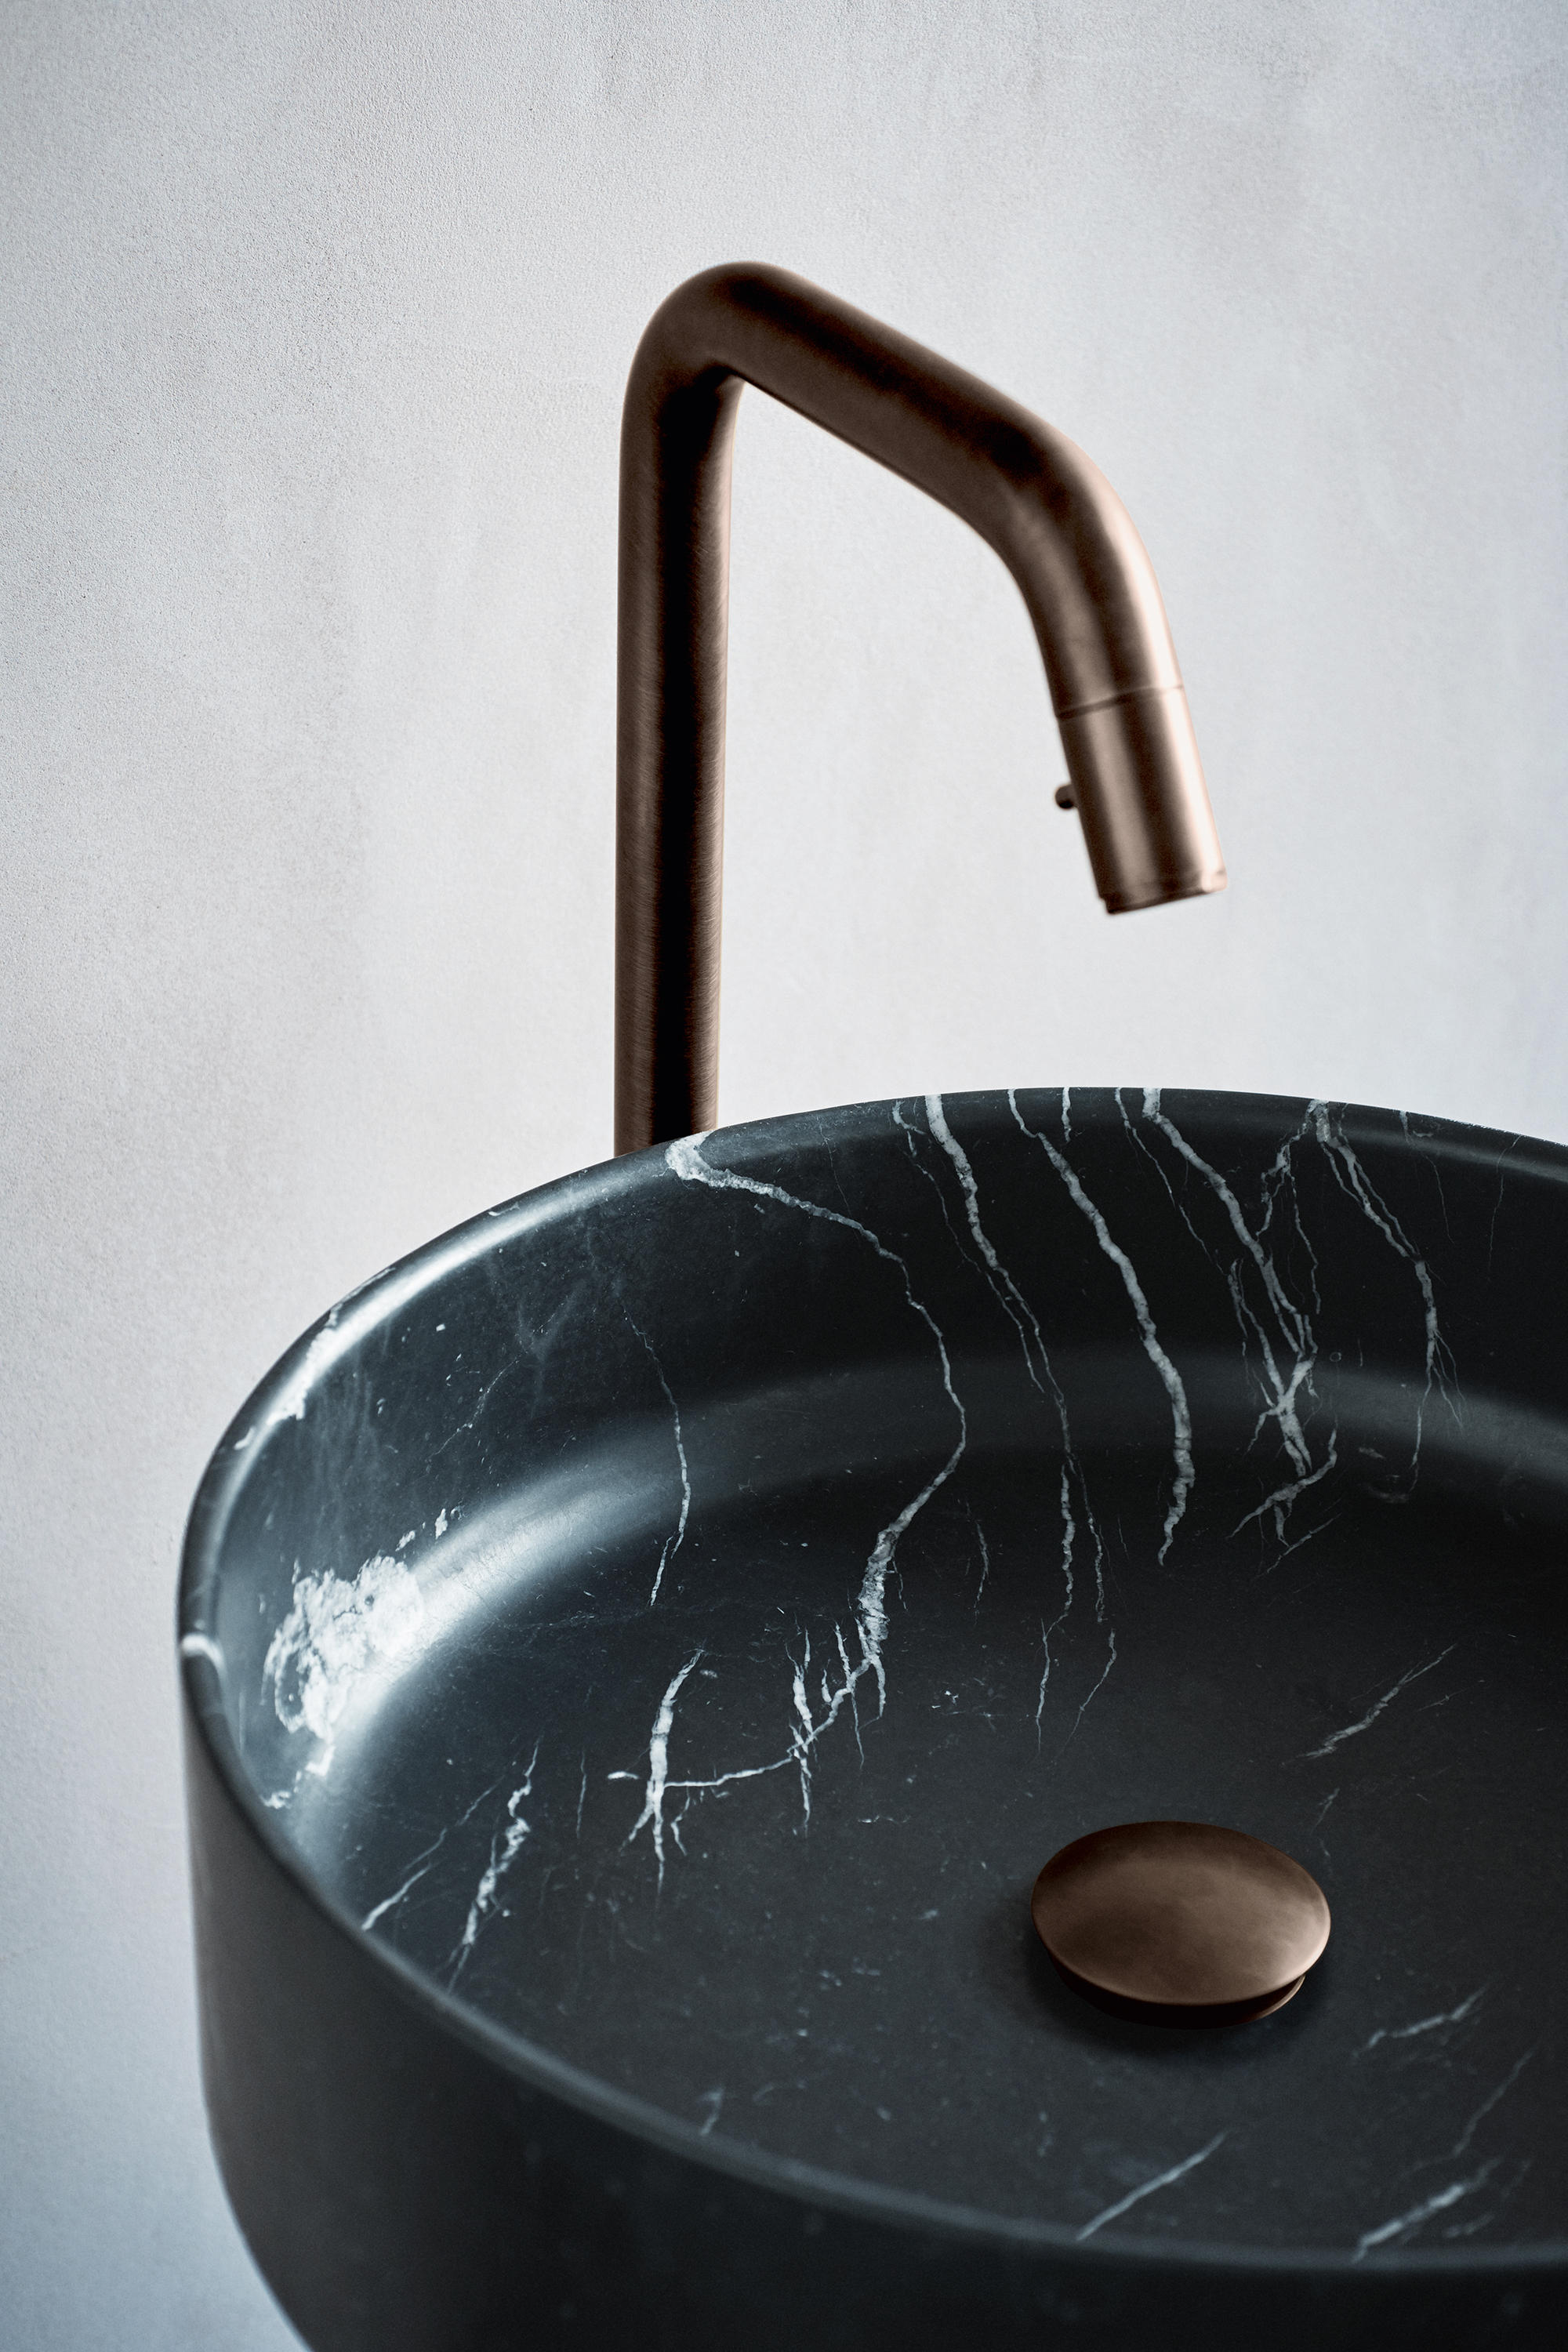 Memory Wash Basin Taps From Agape Architonic